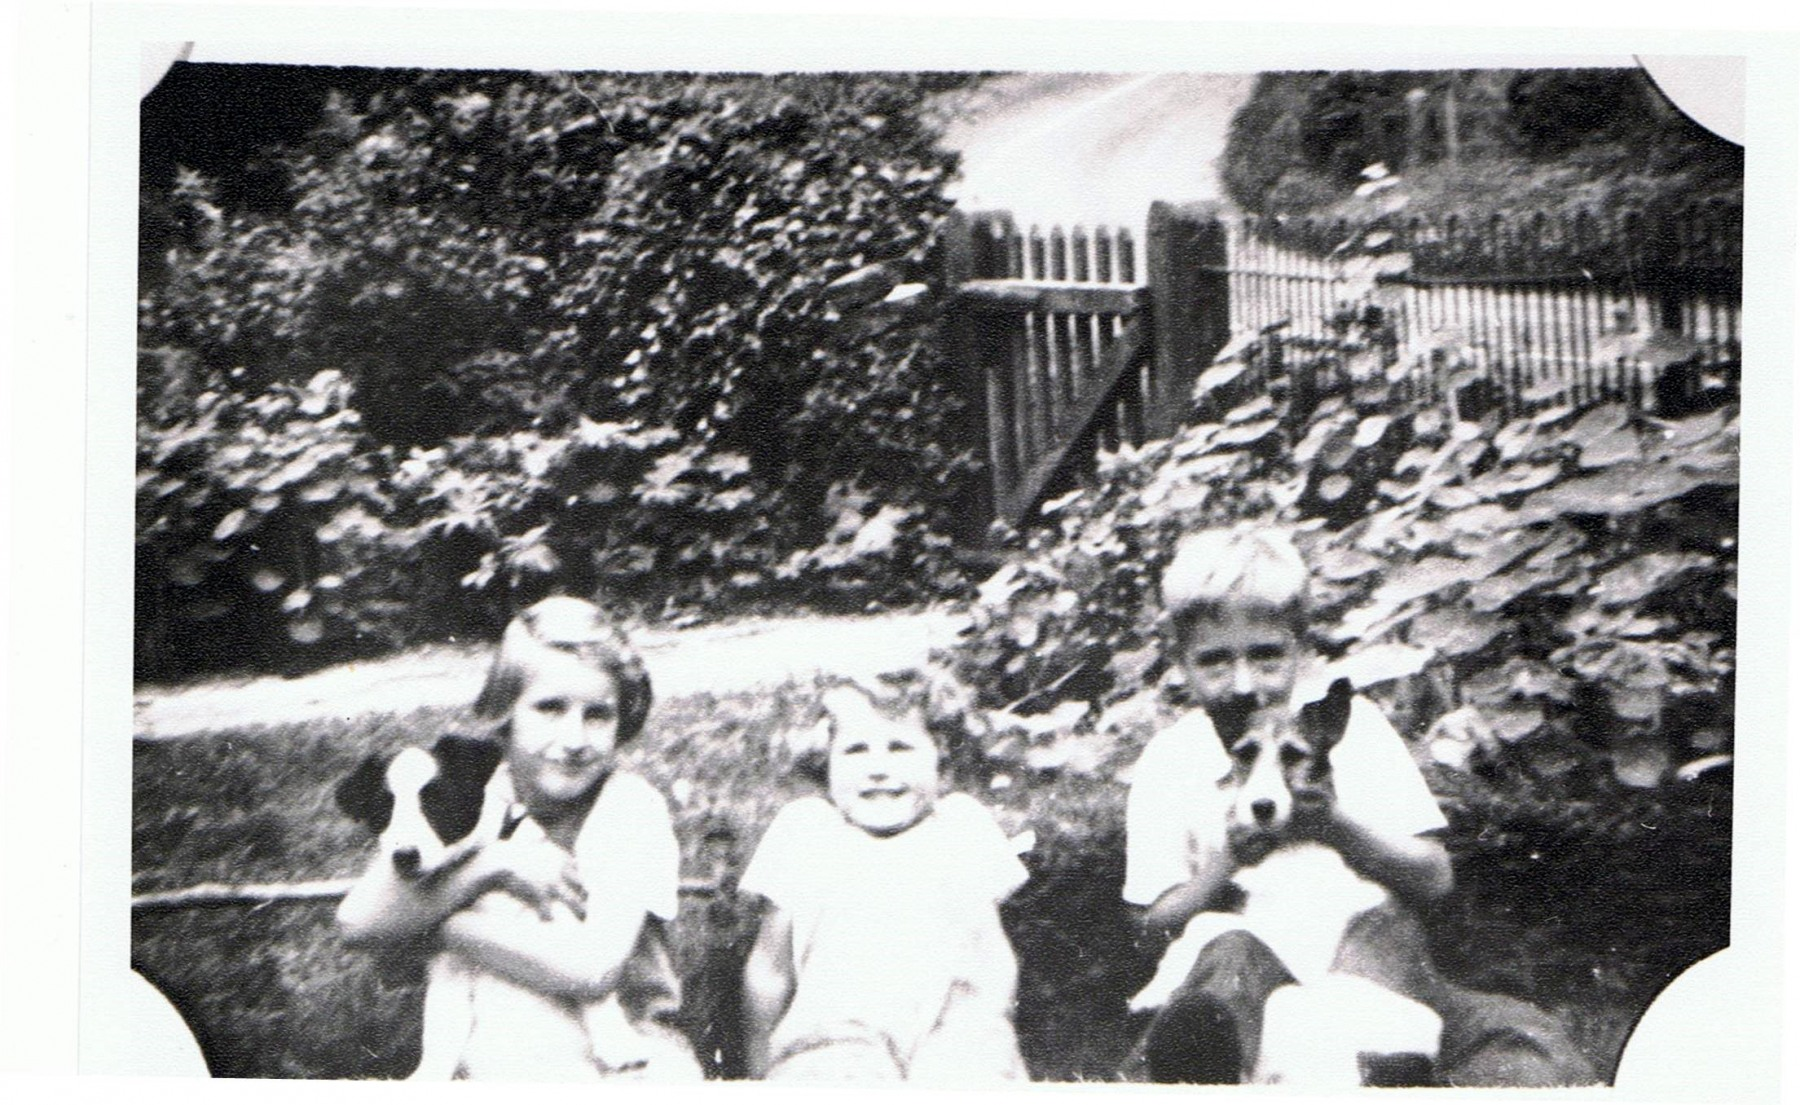 Whistlow. From left: Helen Wood (now Mrs. Smith) (holding Sooty the dog), Muriel Wood) (now Mrs. Standen) and David Eaglestone (holding Betsy the dog), at home.